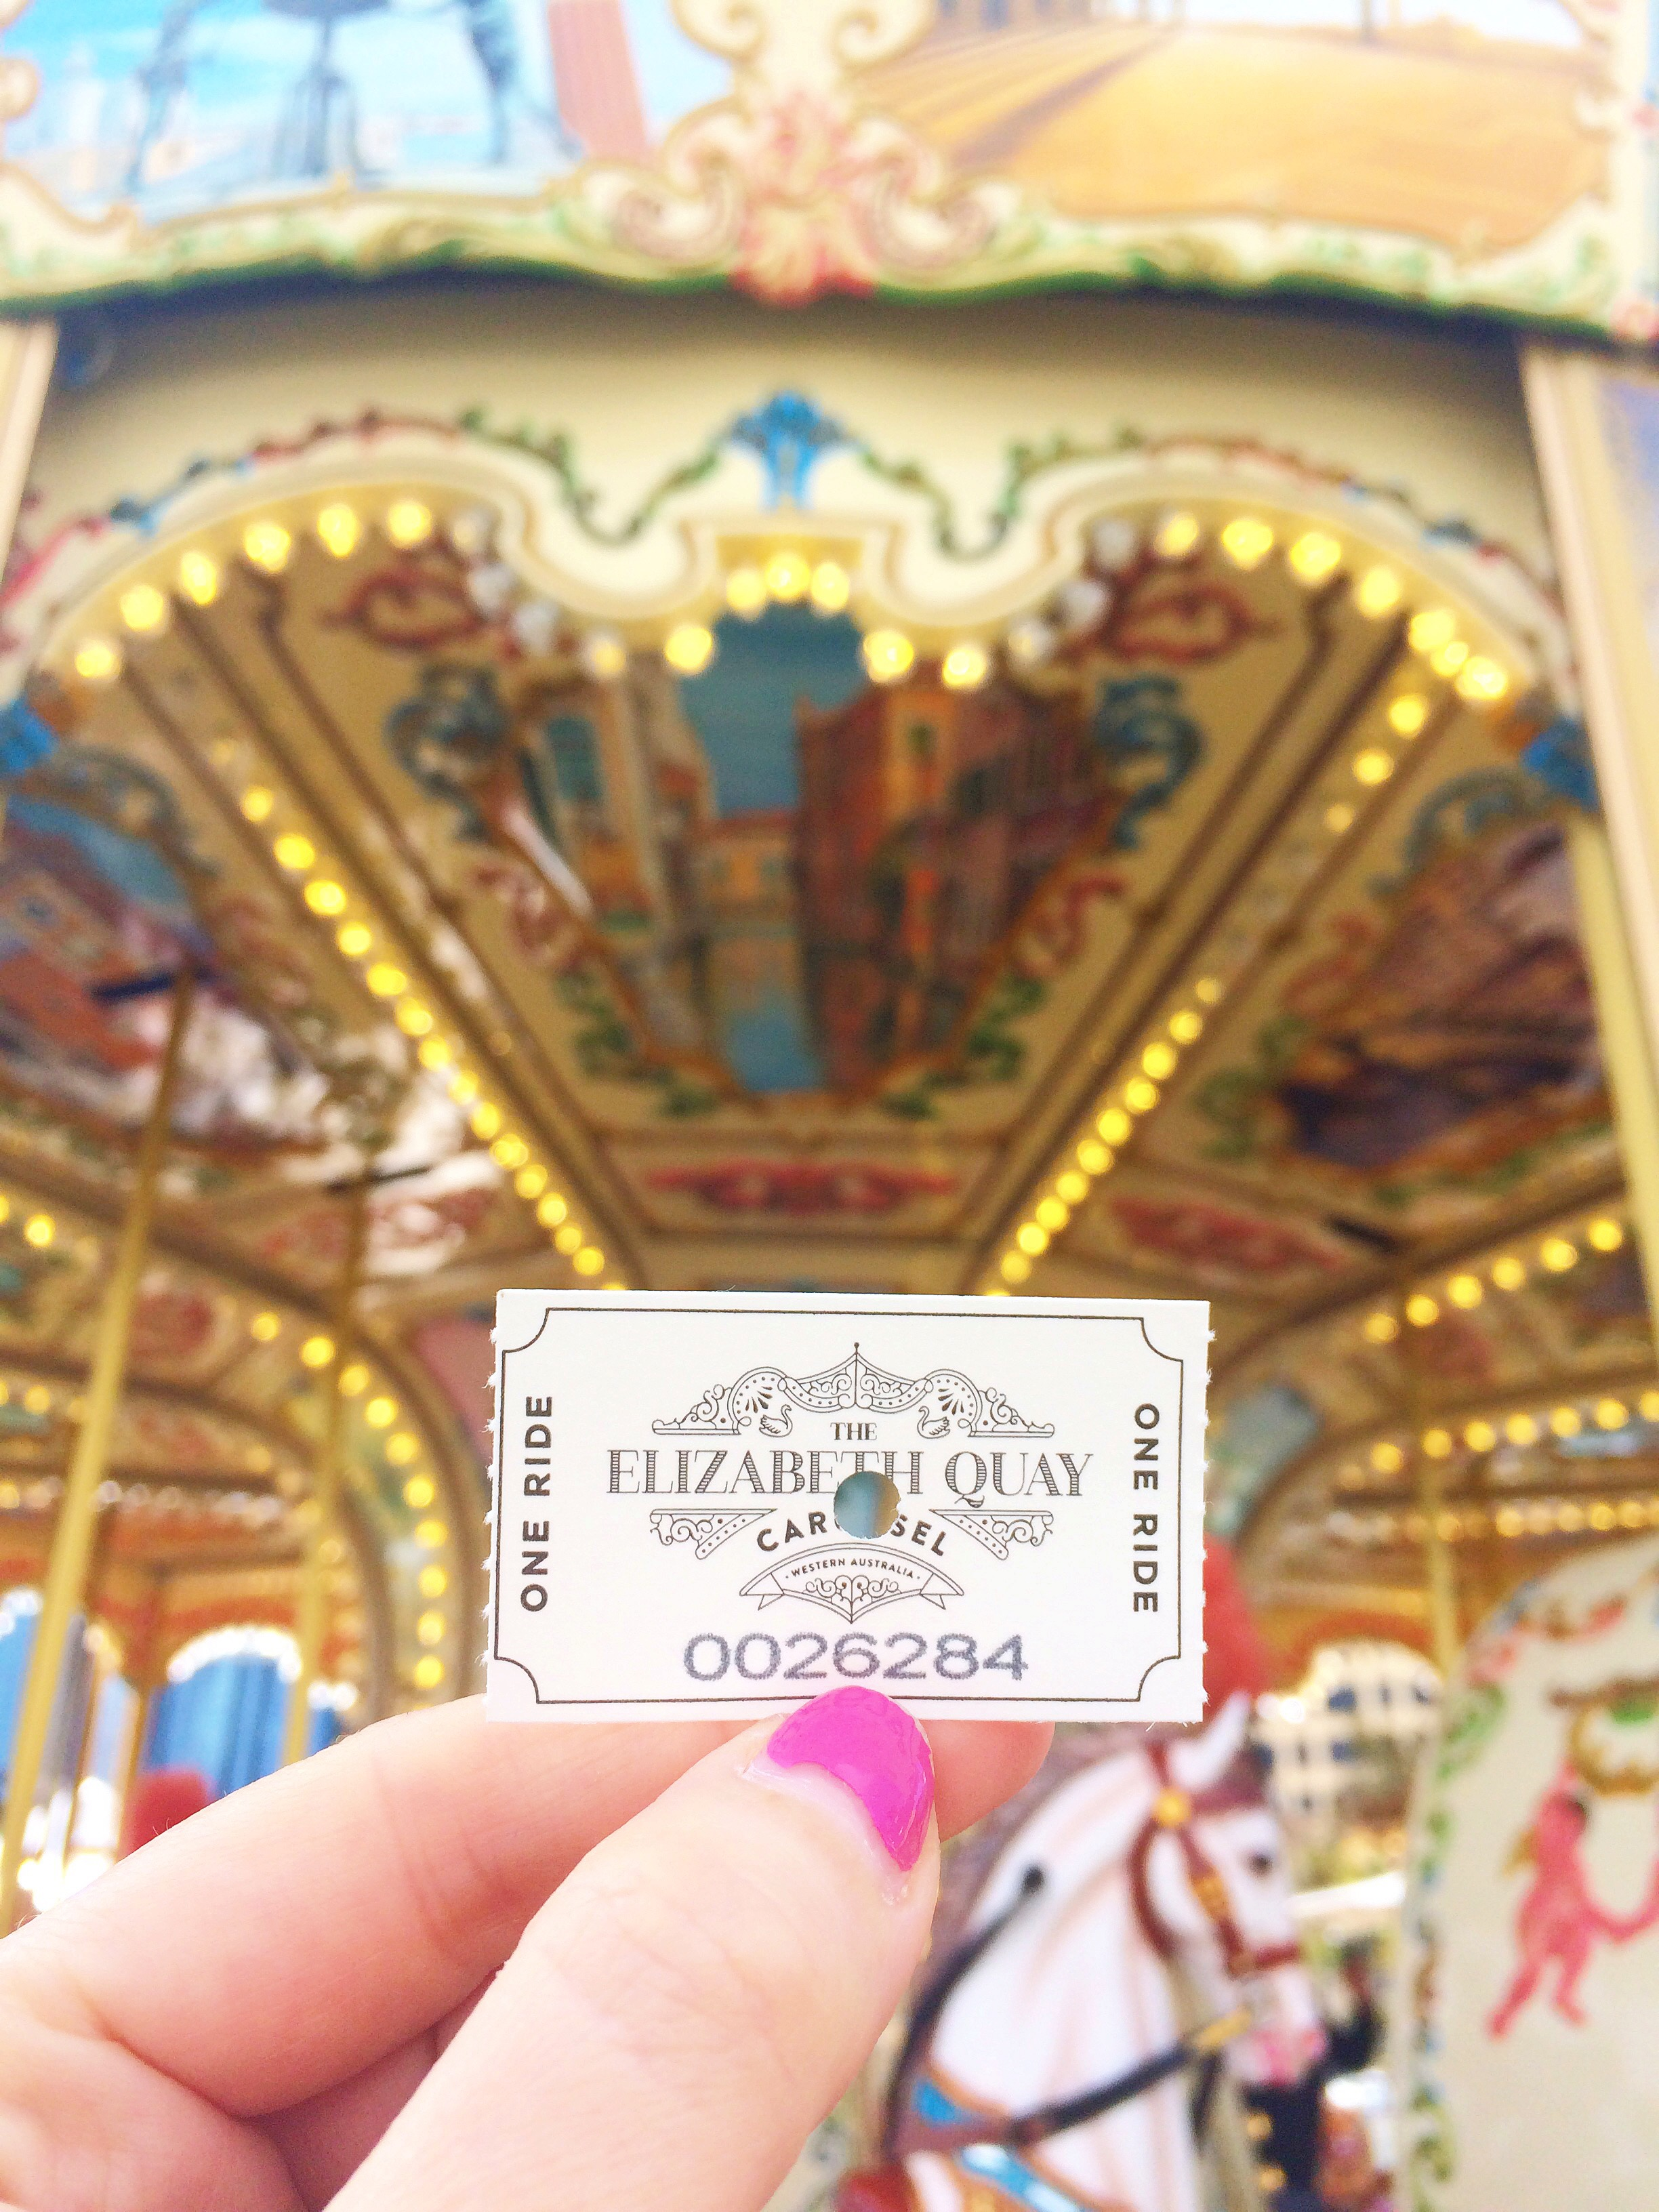 ticket held up in front of the carousel